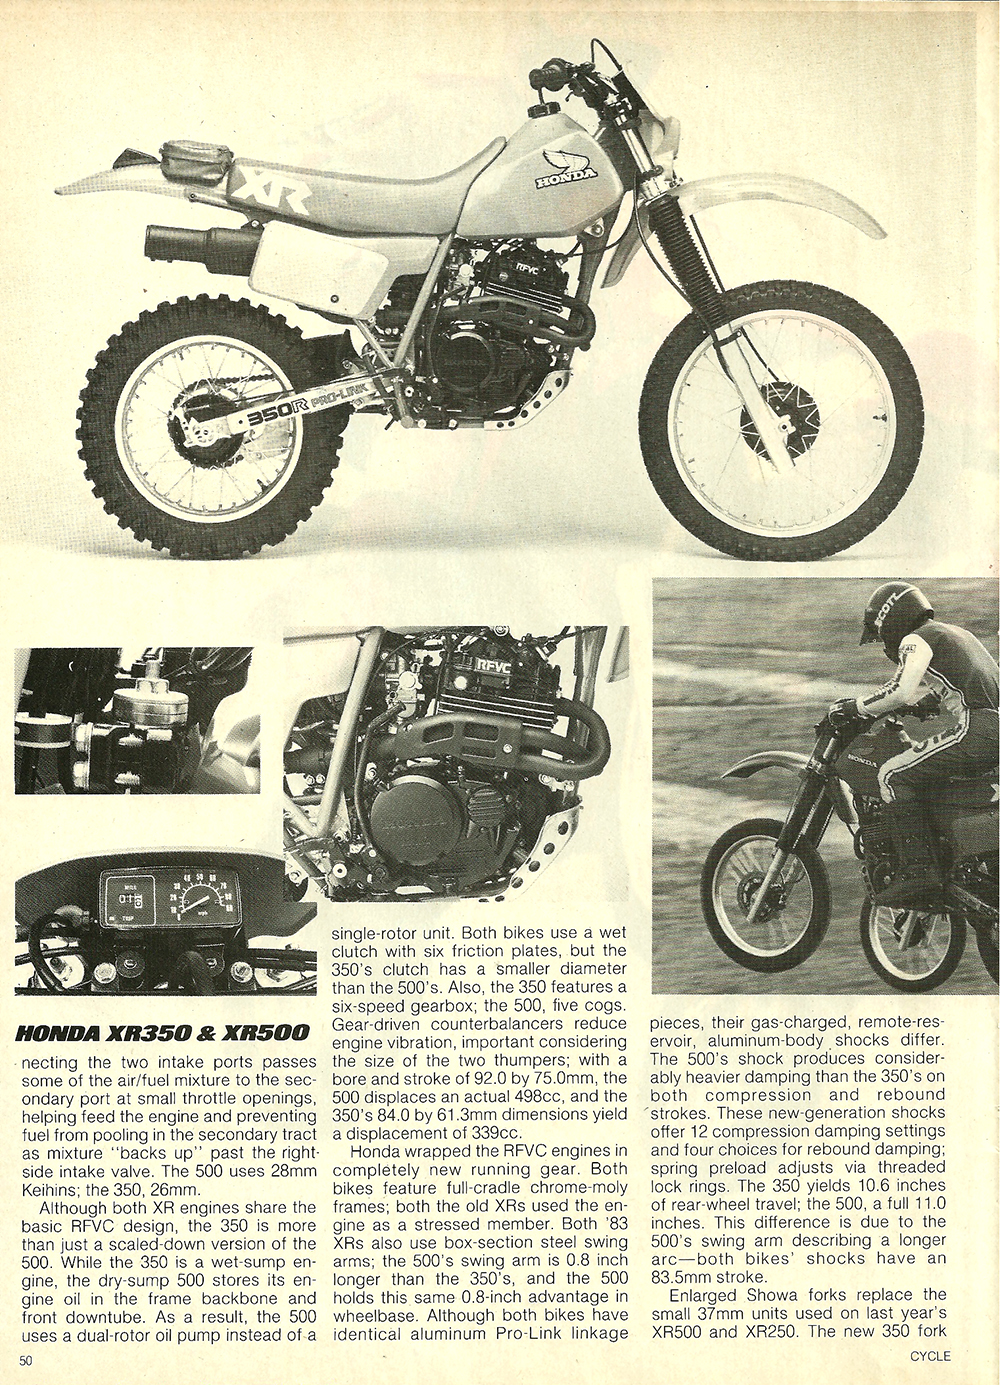 1983 Honda XR350R XR500R road test 3.jpg